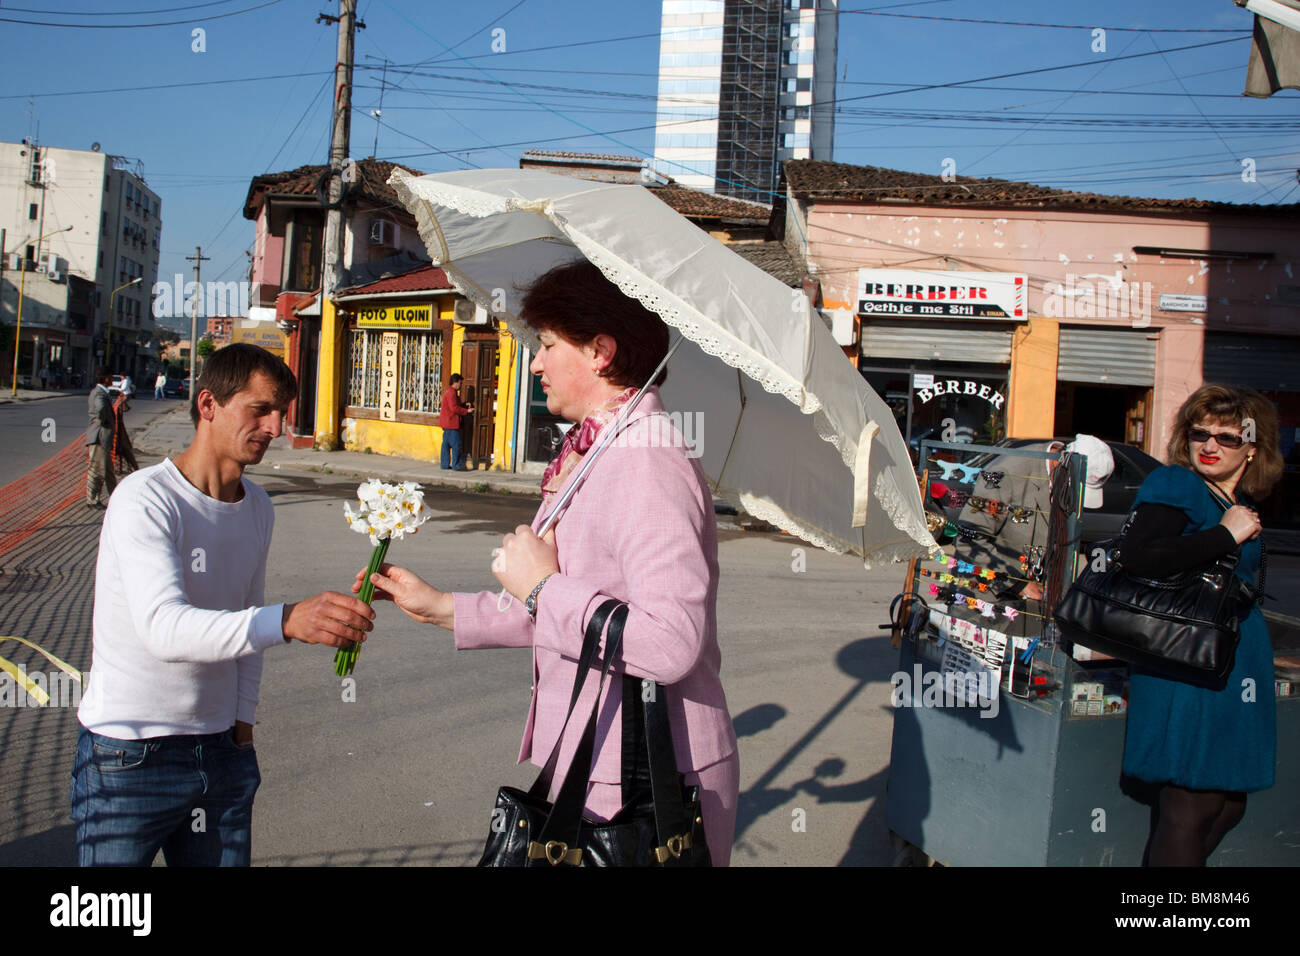 A woman buys flowers in Tirana, the capital of Albania. - Stock Image